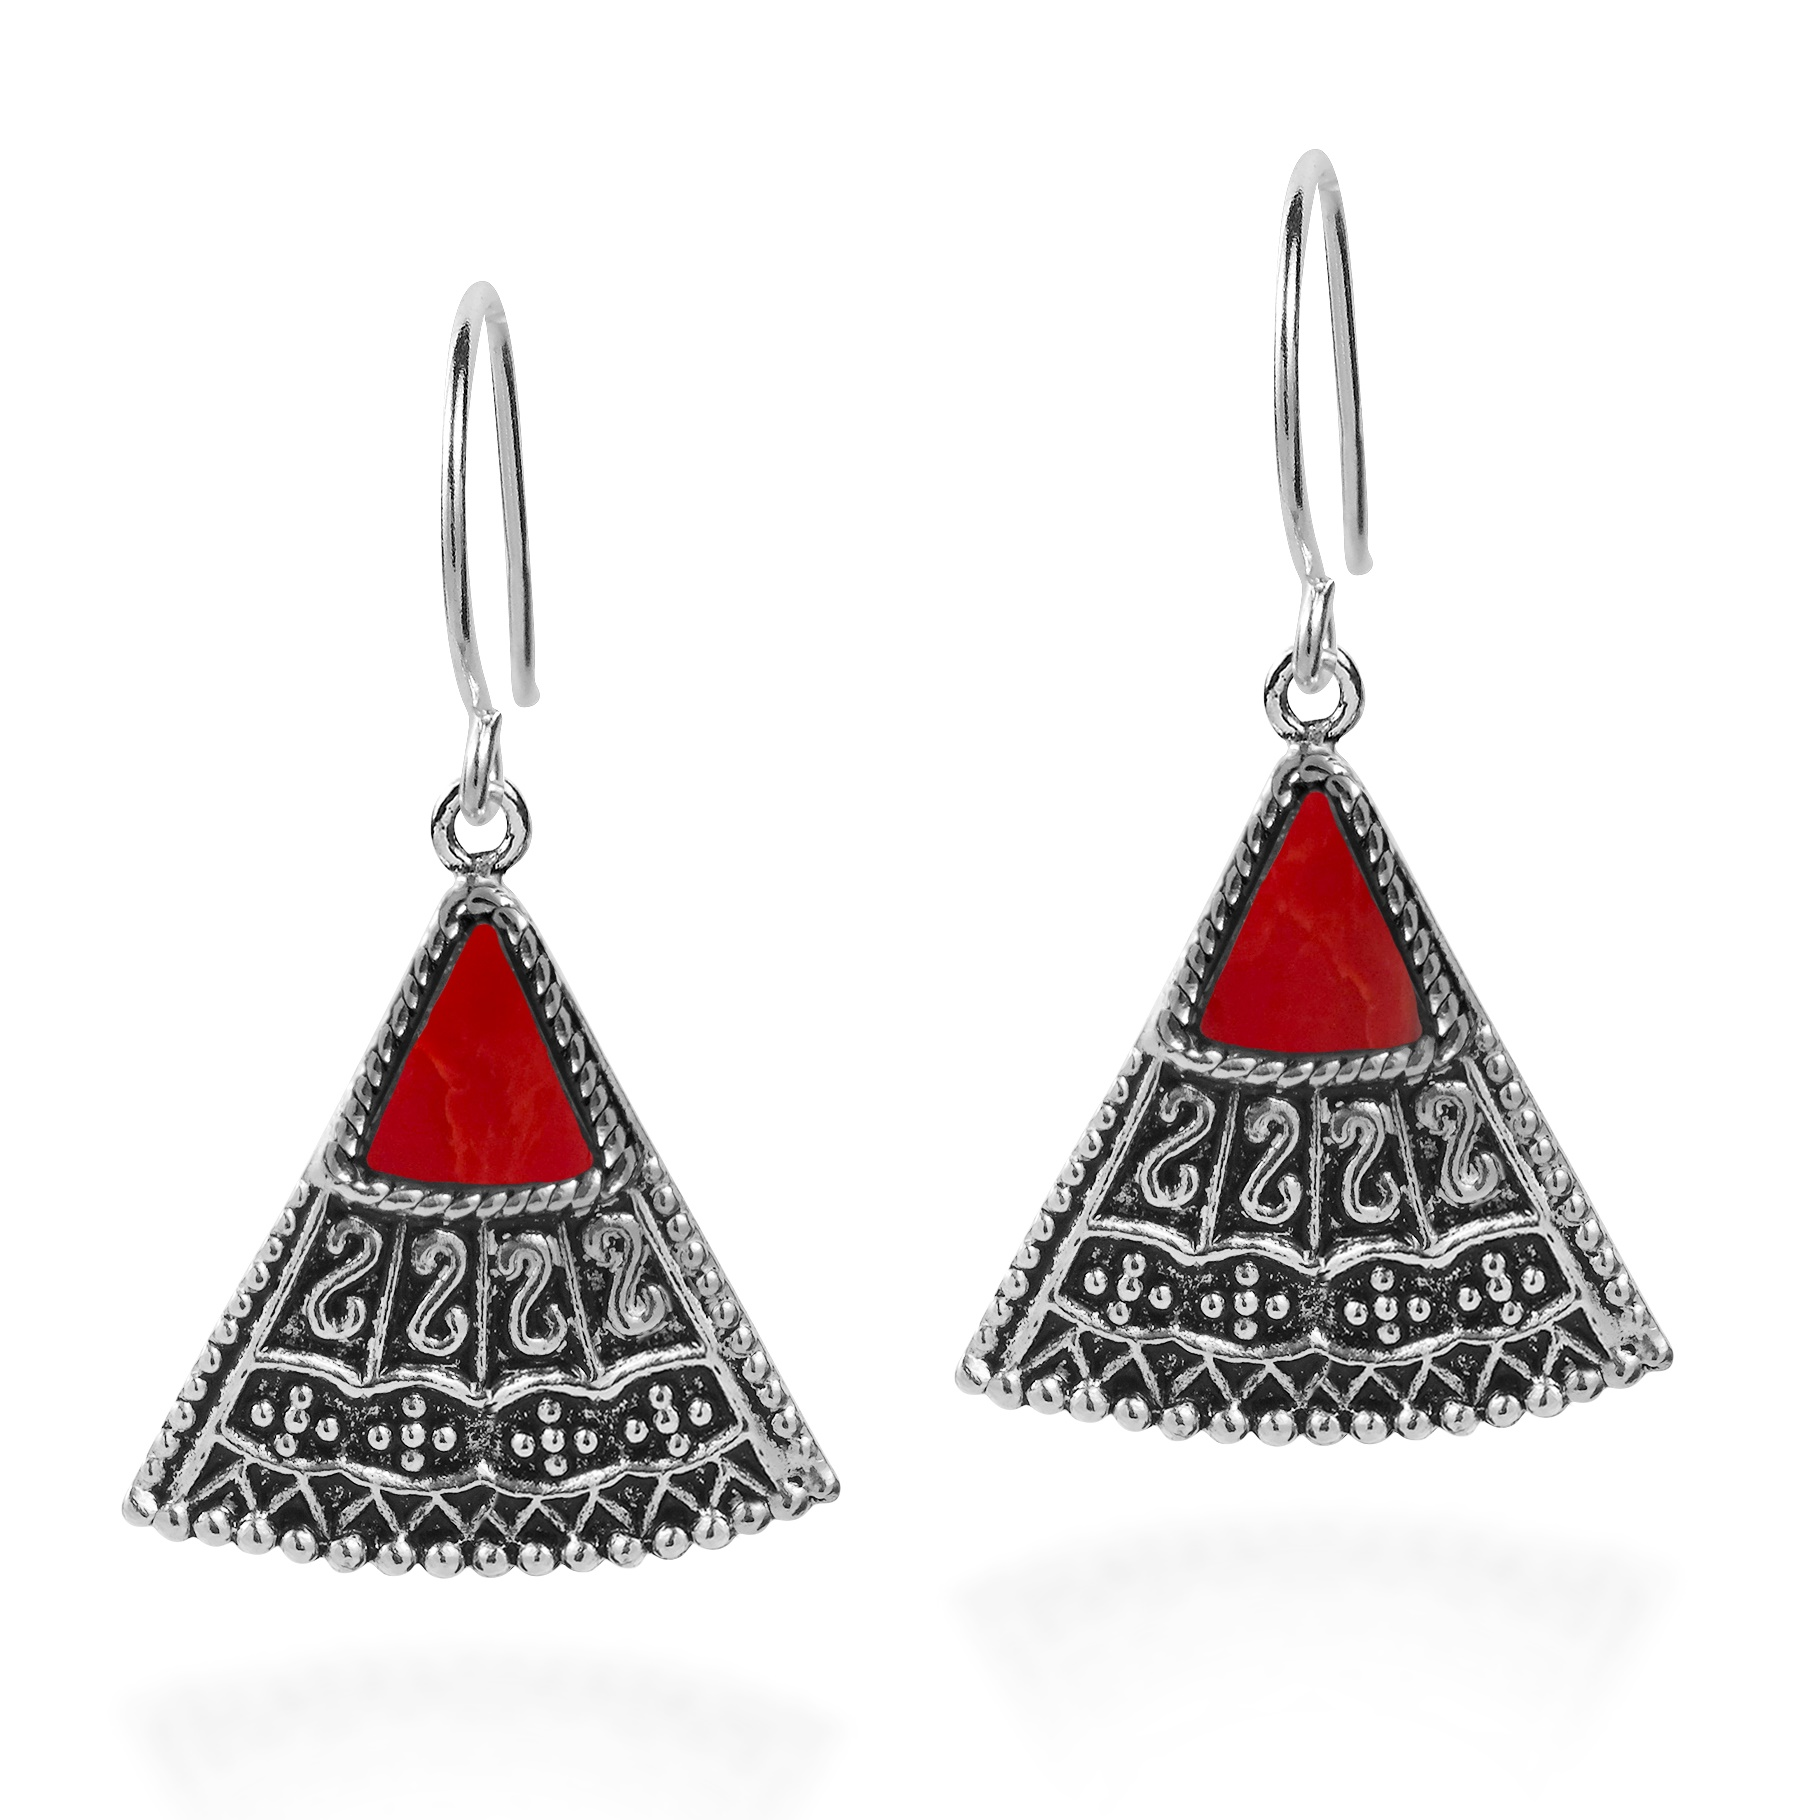 Triangle Earrings: Balinese Art Triangle Shape Red Coral Sterling Silver